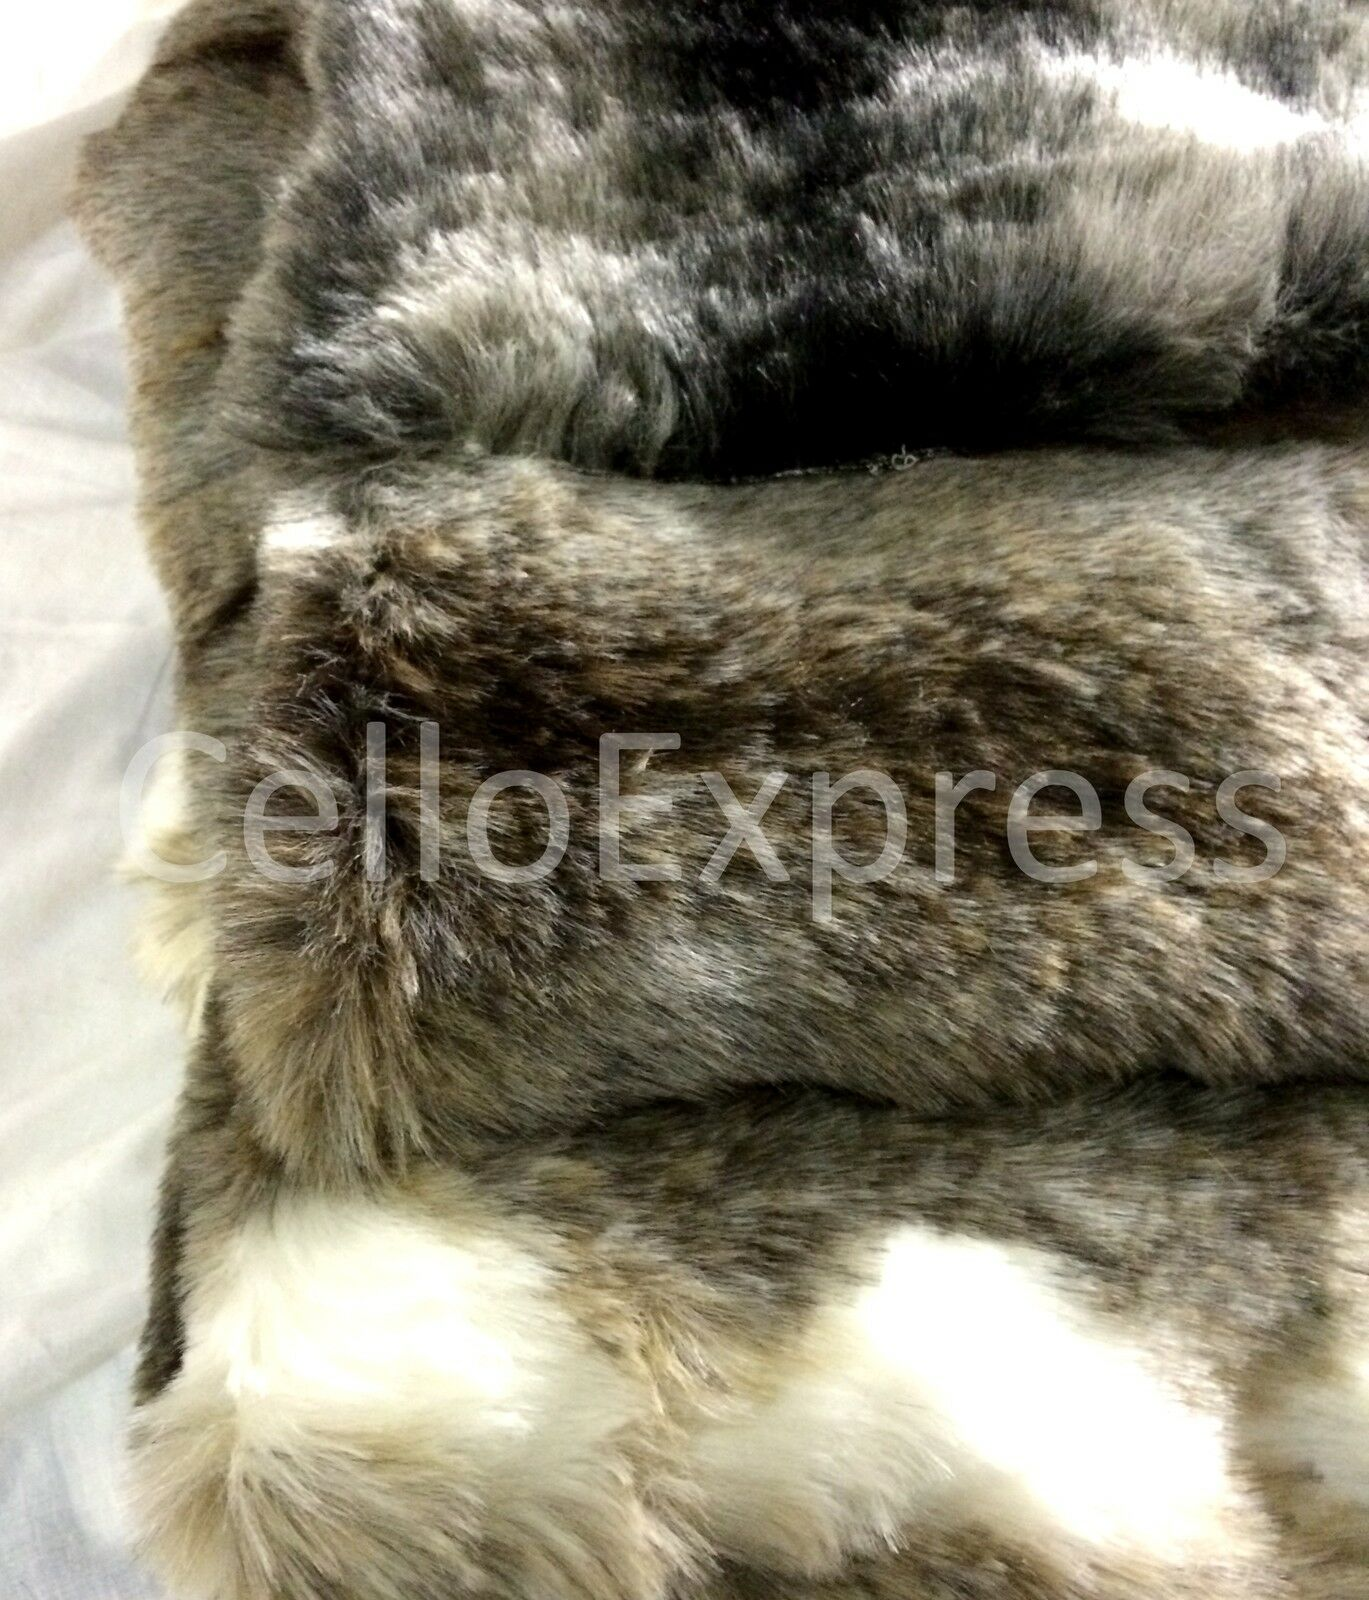 Striped Faux Fake Luxury Luxury Luxury Fur Fabric 25mm Pile Teddy Bear & Animal Toy Craft 9994dc